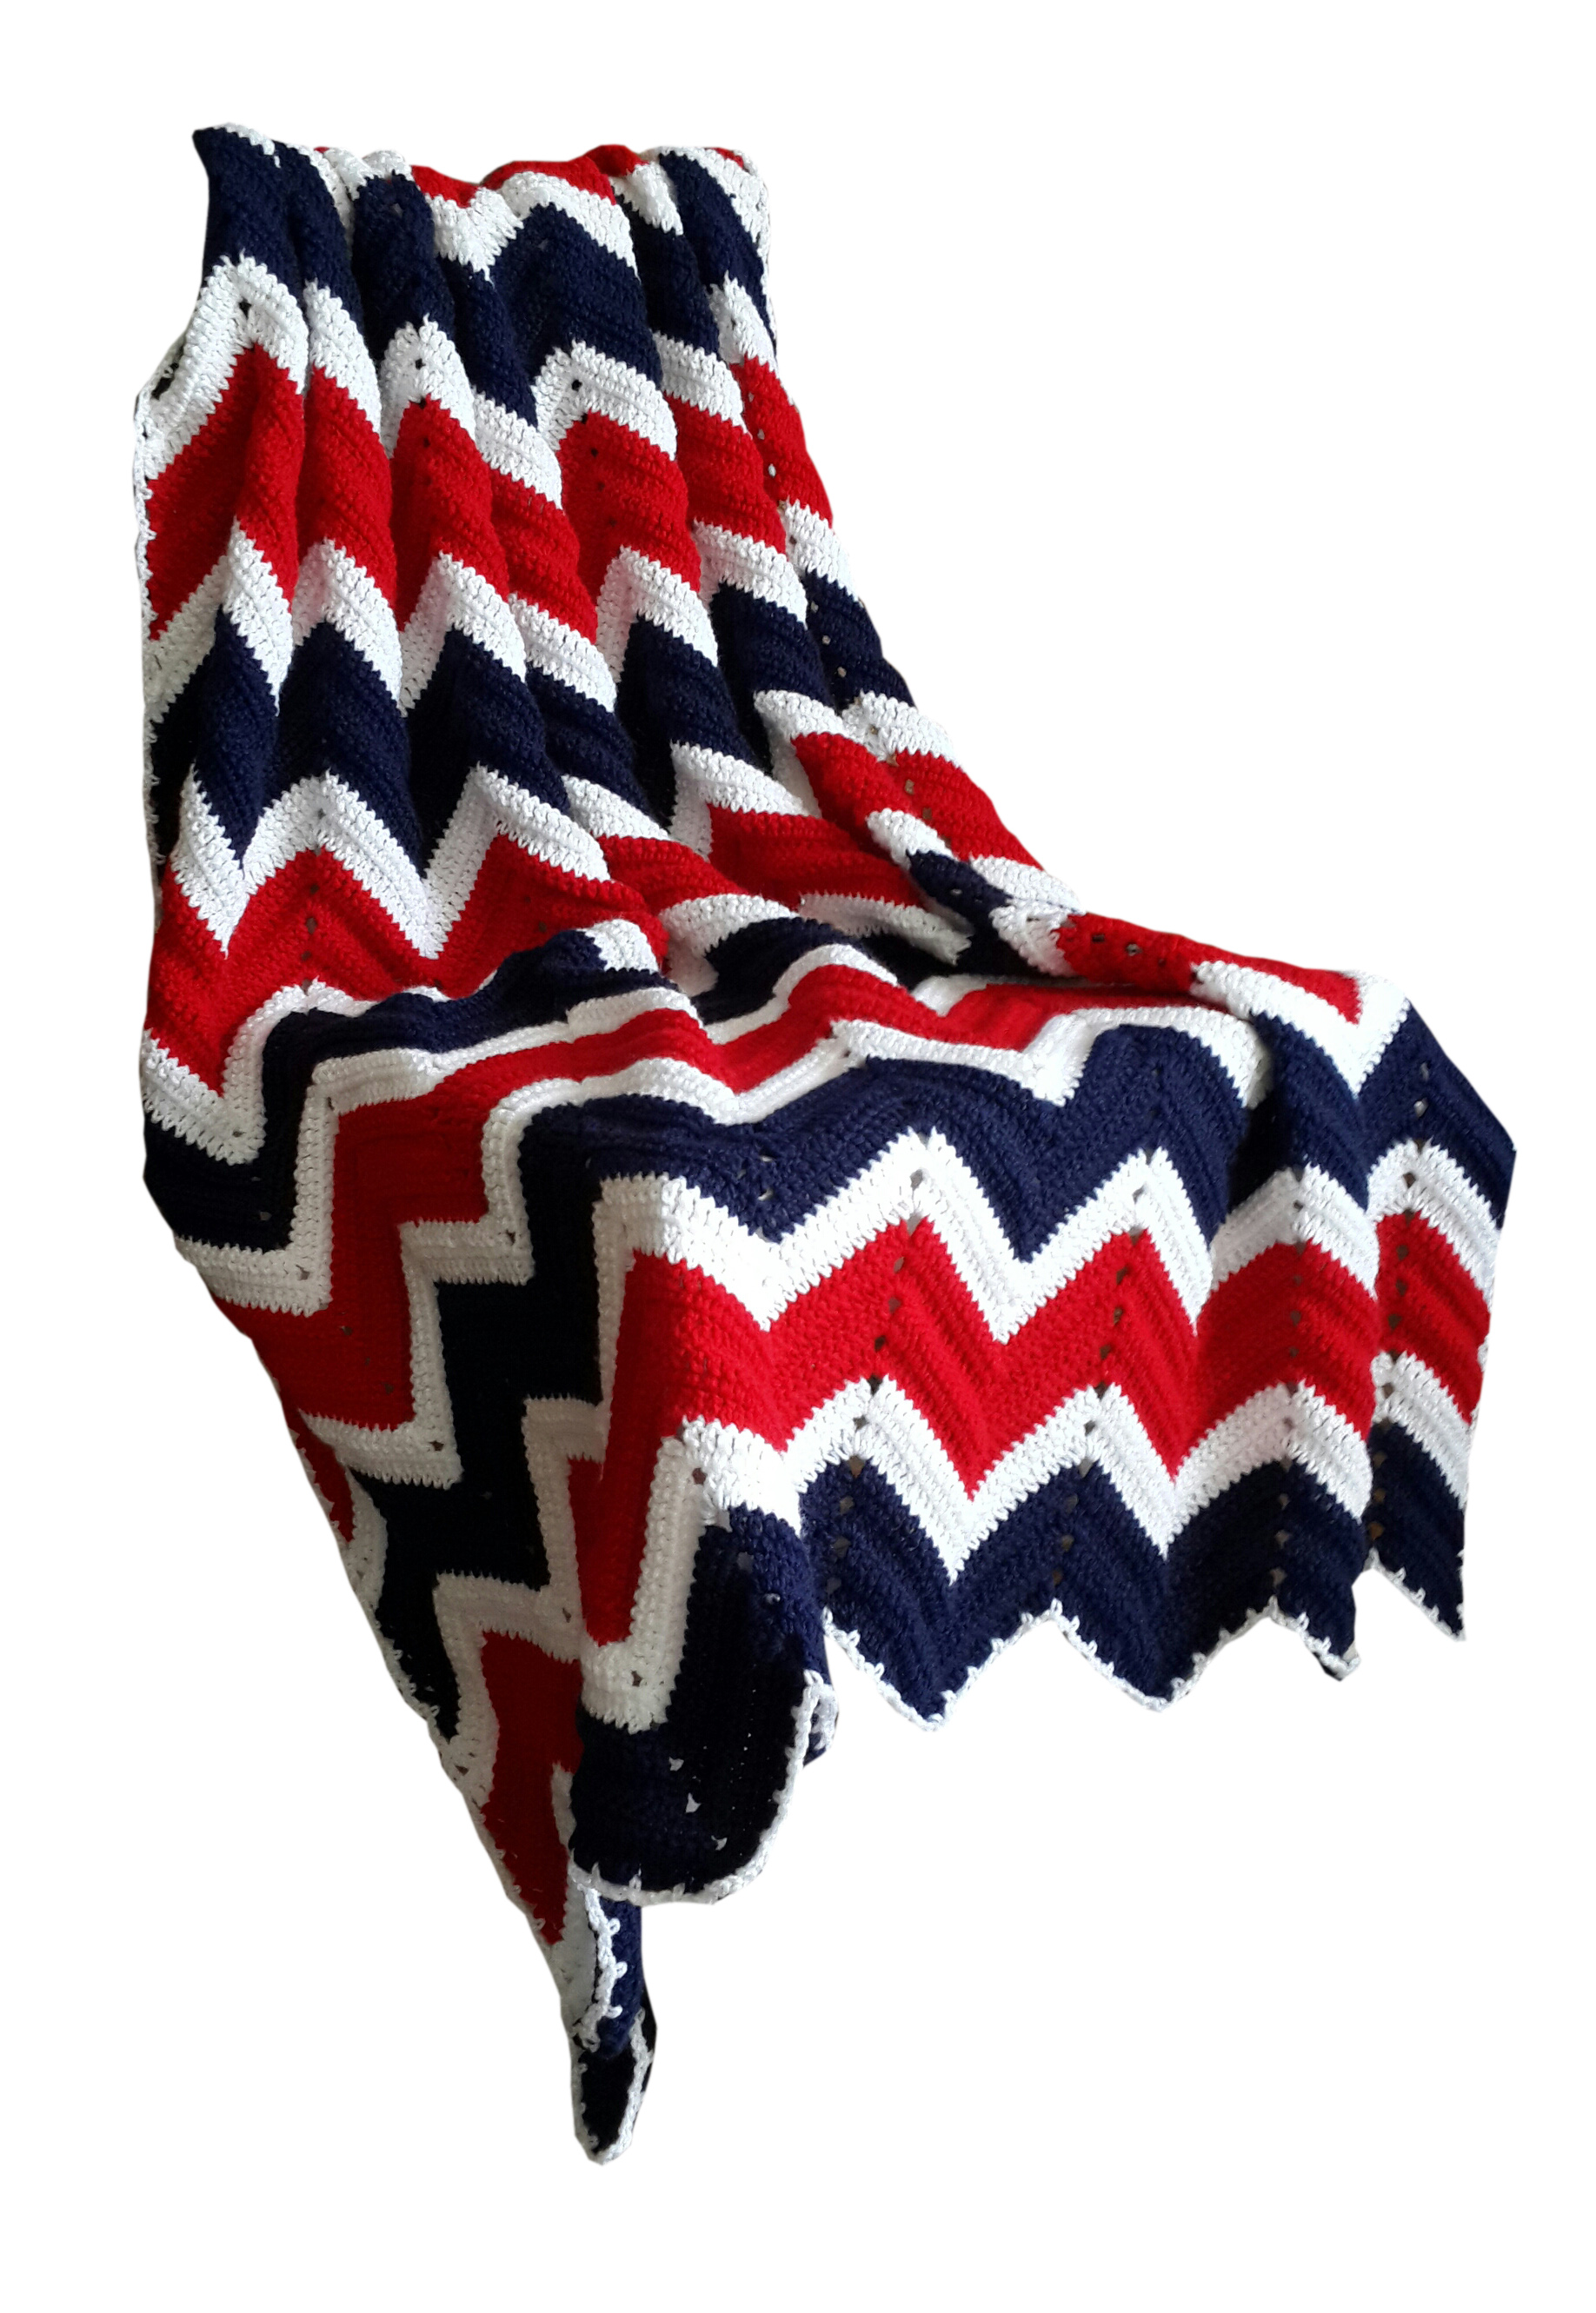 Vintage Look Zig Zag Crochet Blanket in Red, White and Blue 115x155cm